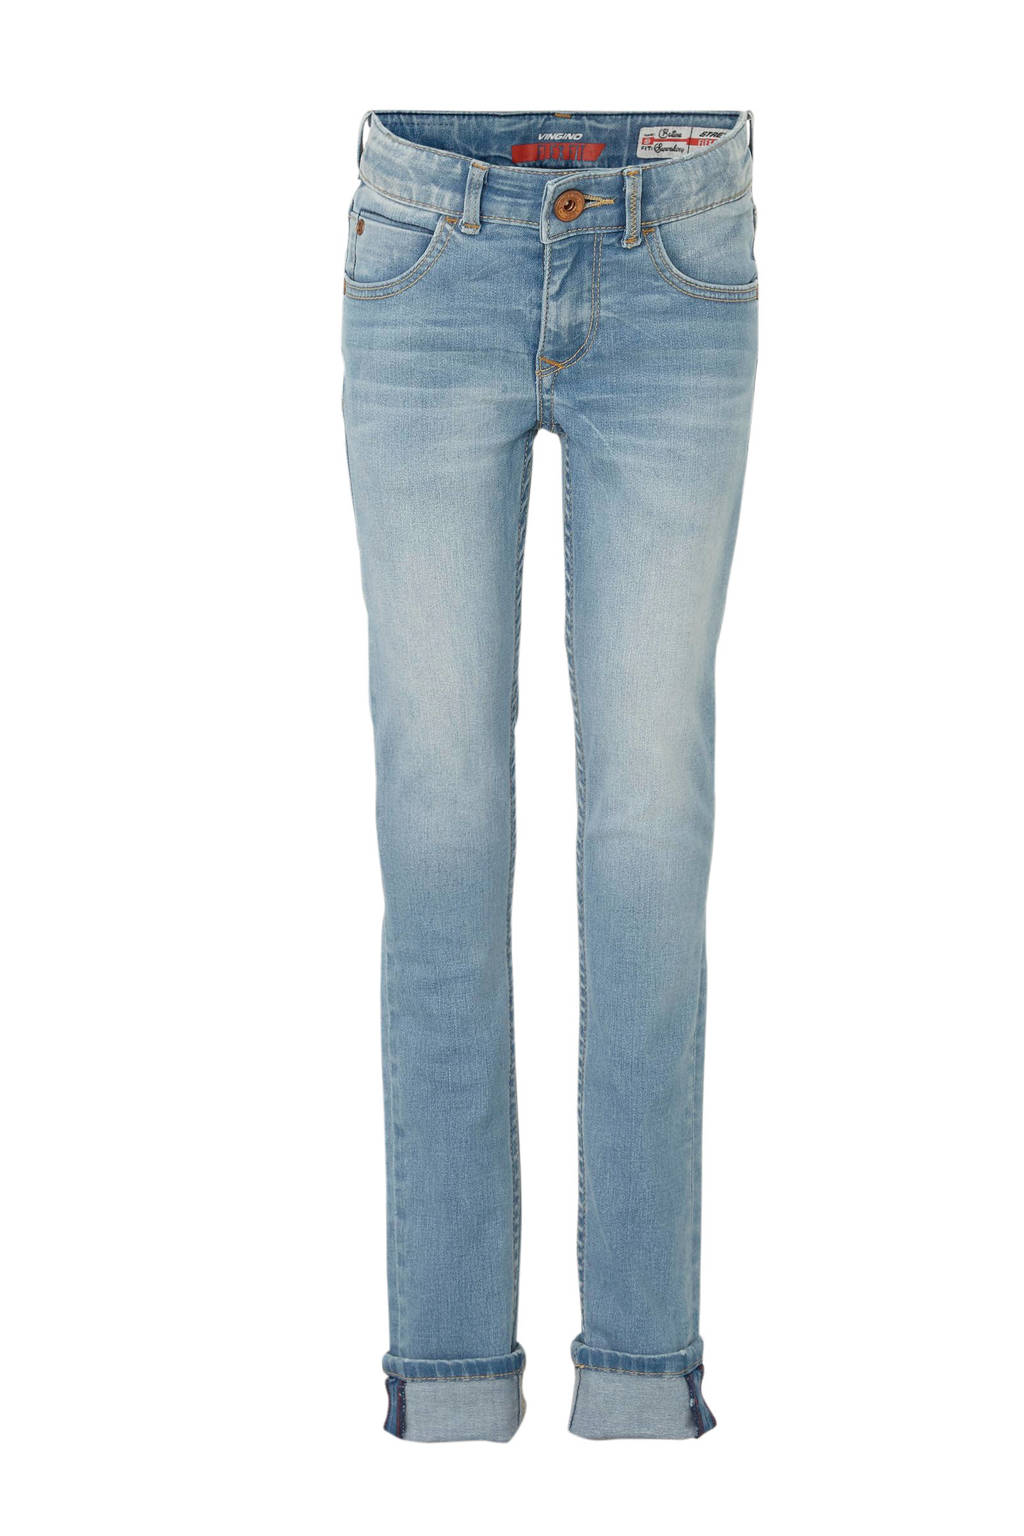 Vingino skinny jeans Bettine, Light vintage